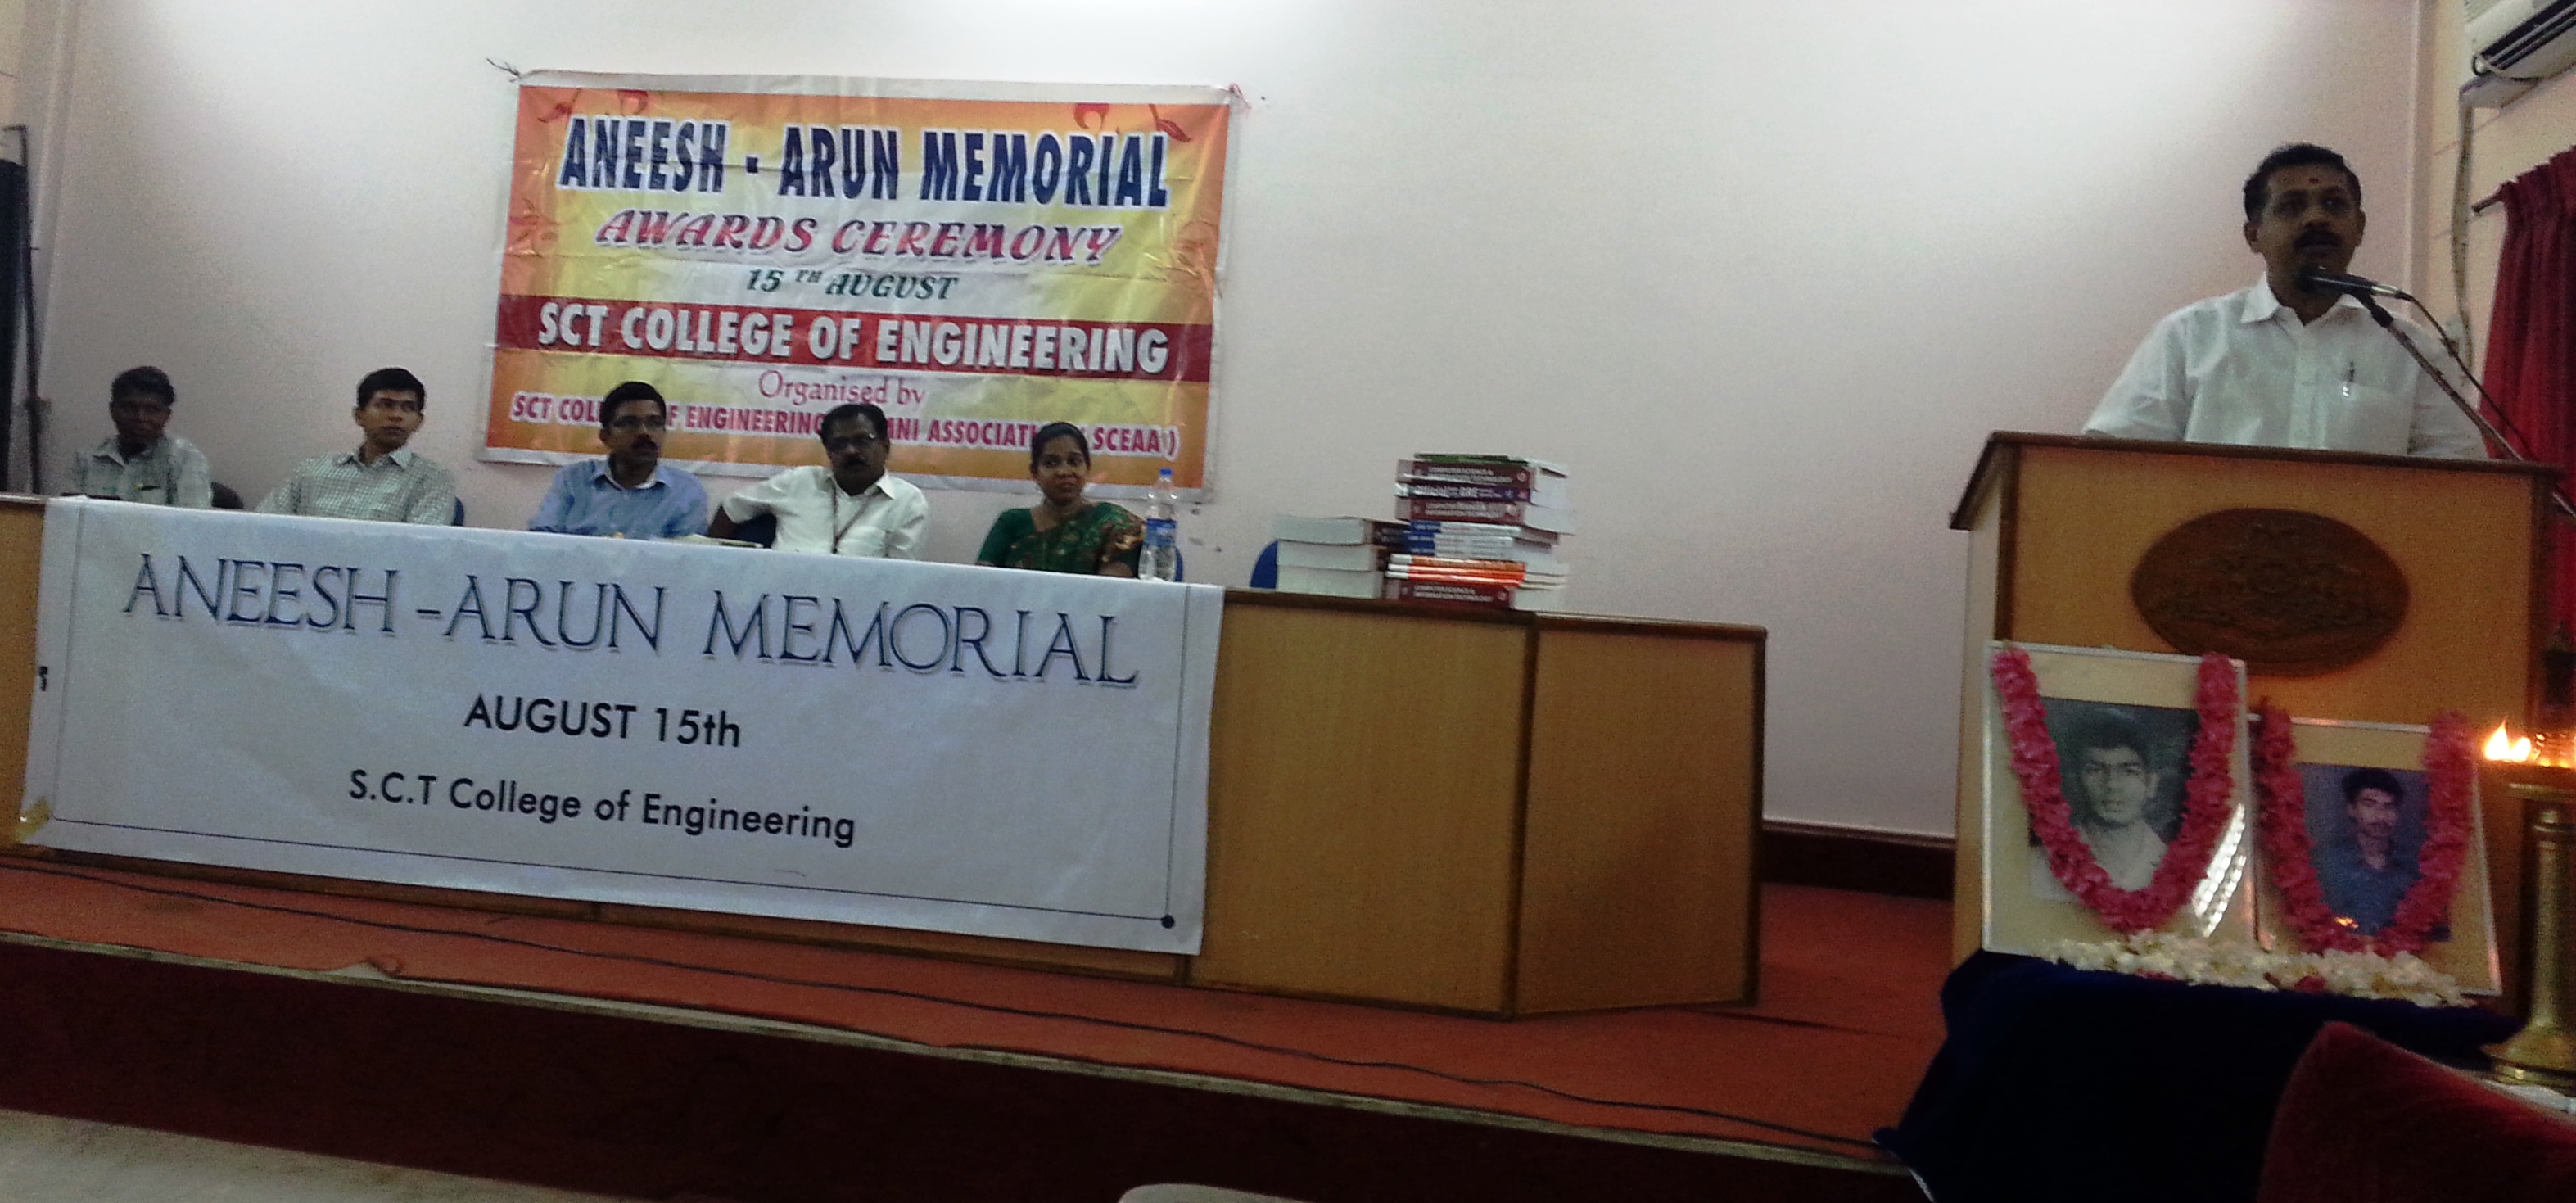 'Aneesh - Arun Memorial' Award is the award given by the 199